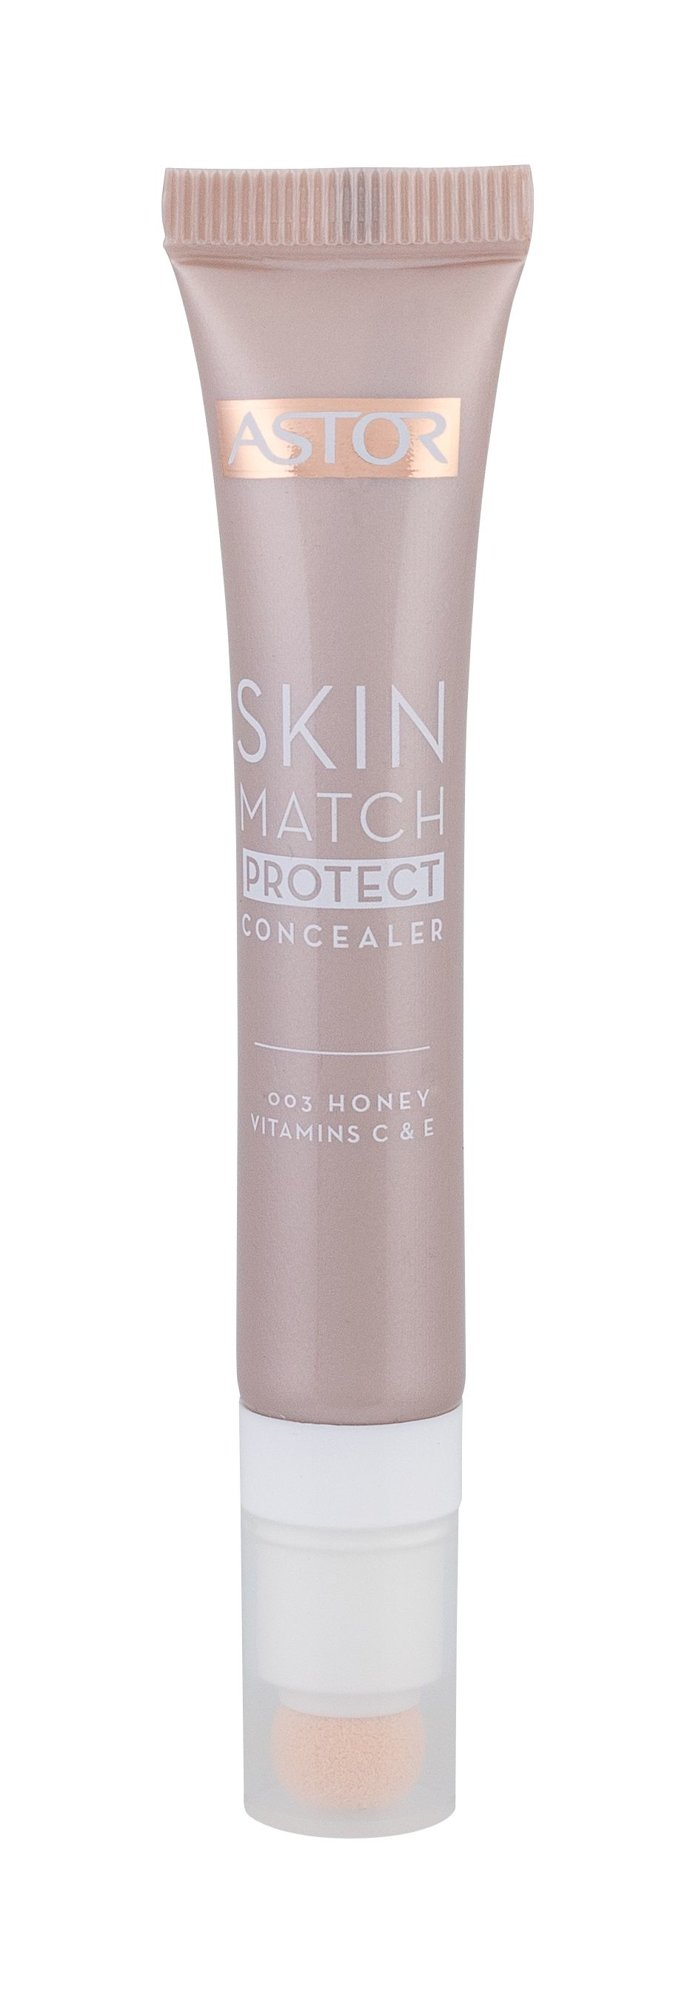 ASTOR Skin Match Protect Cosmetic 7ml 003 Honey